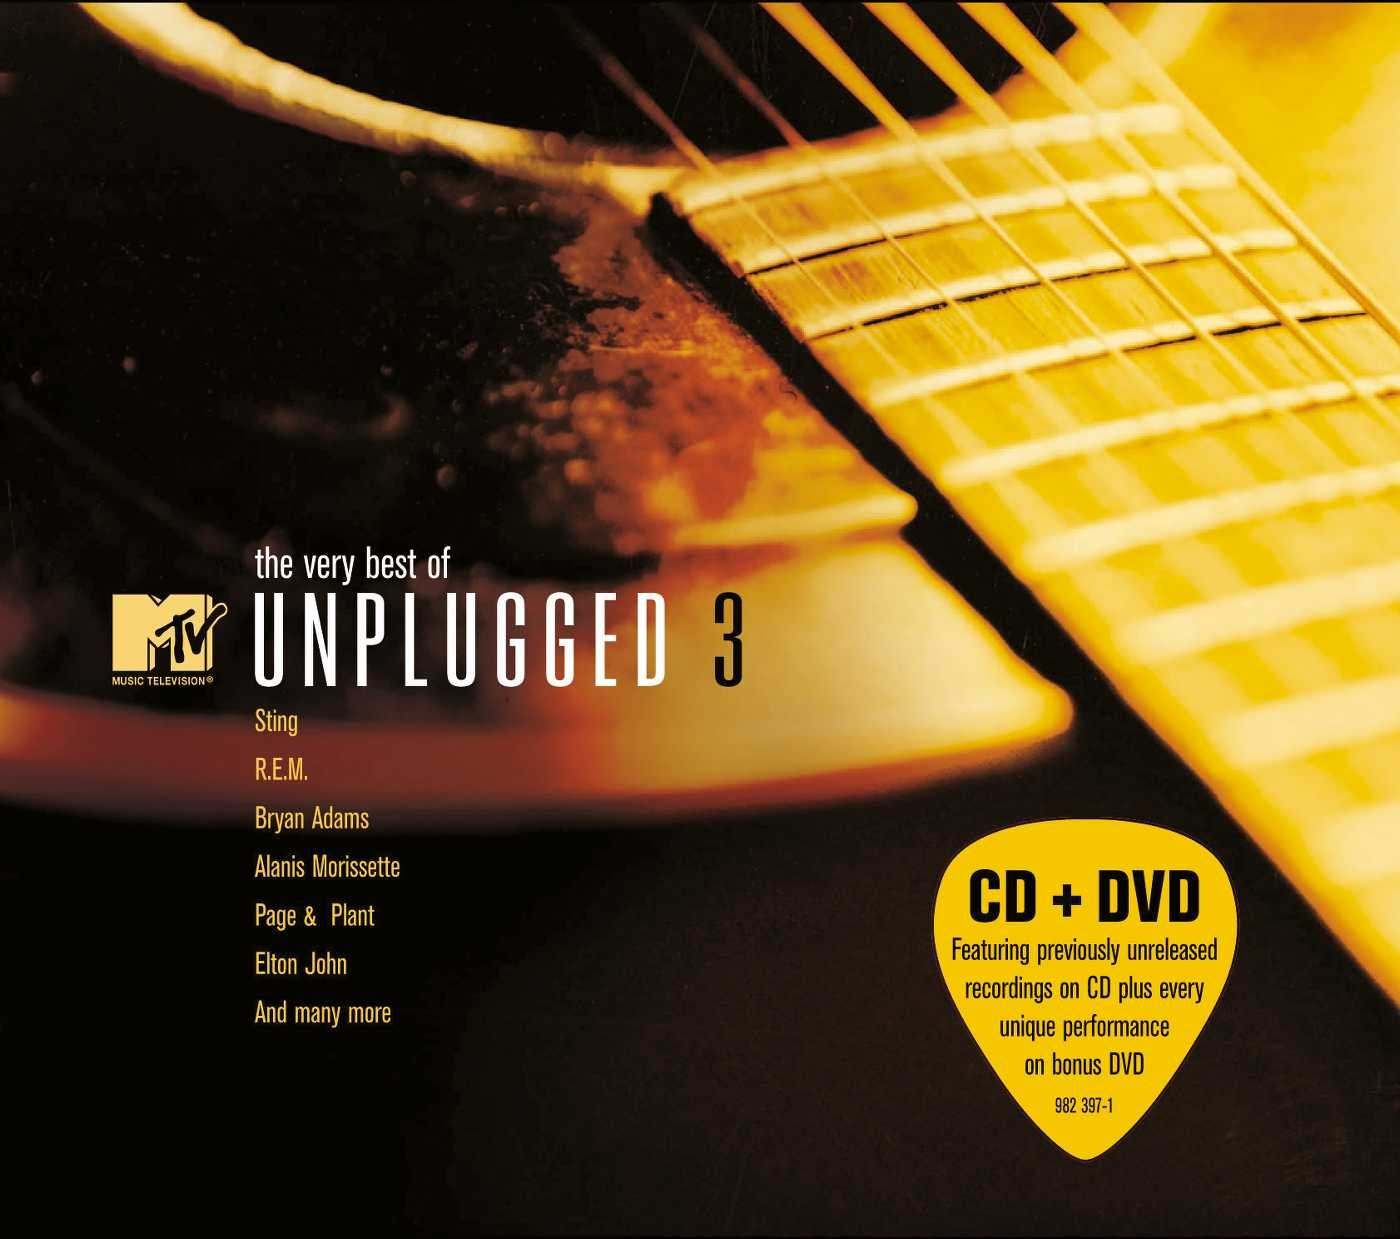 The Very Best Of MTV Unplugged 3 by Universal